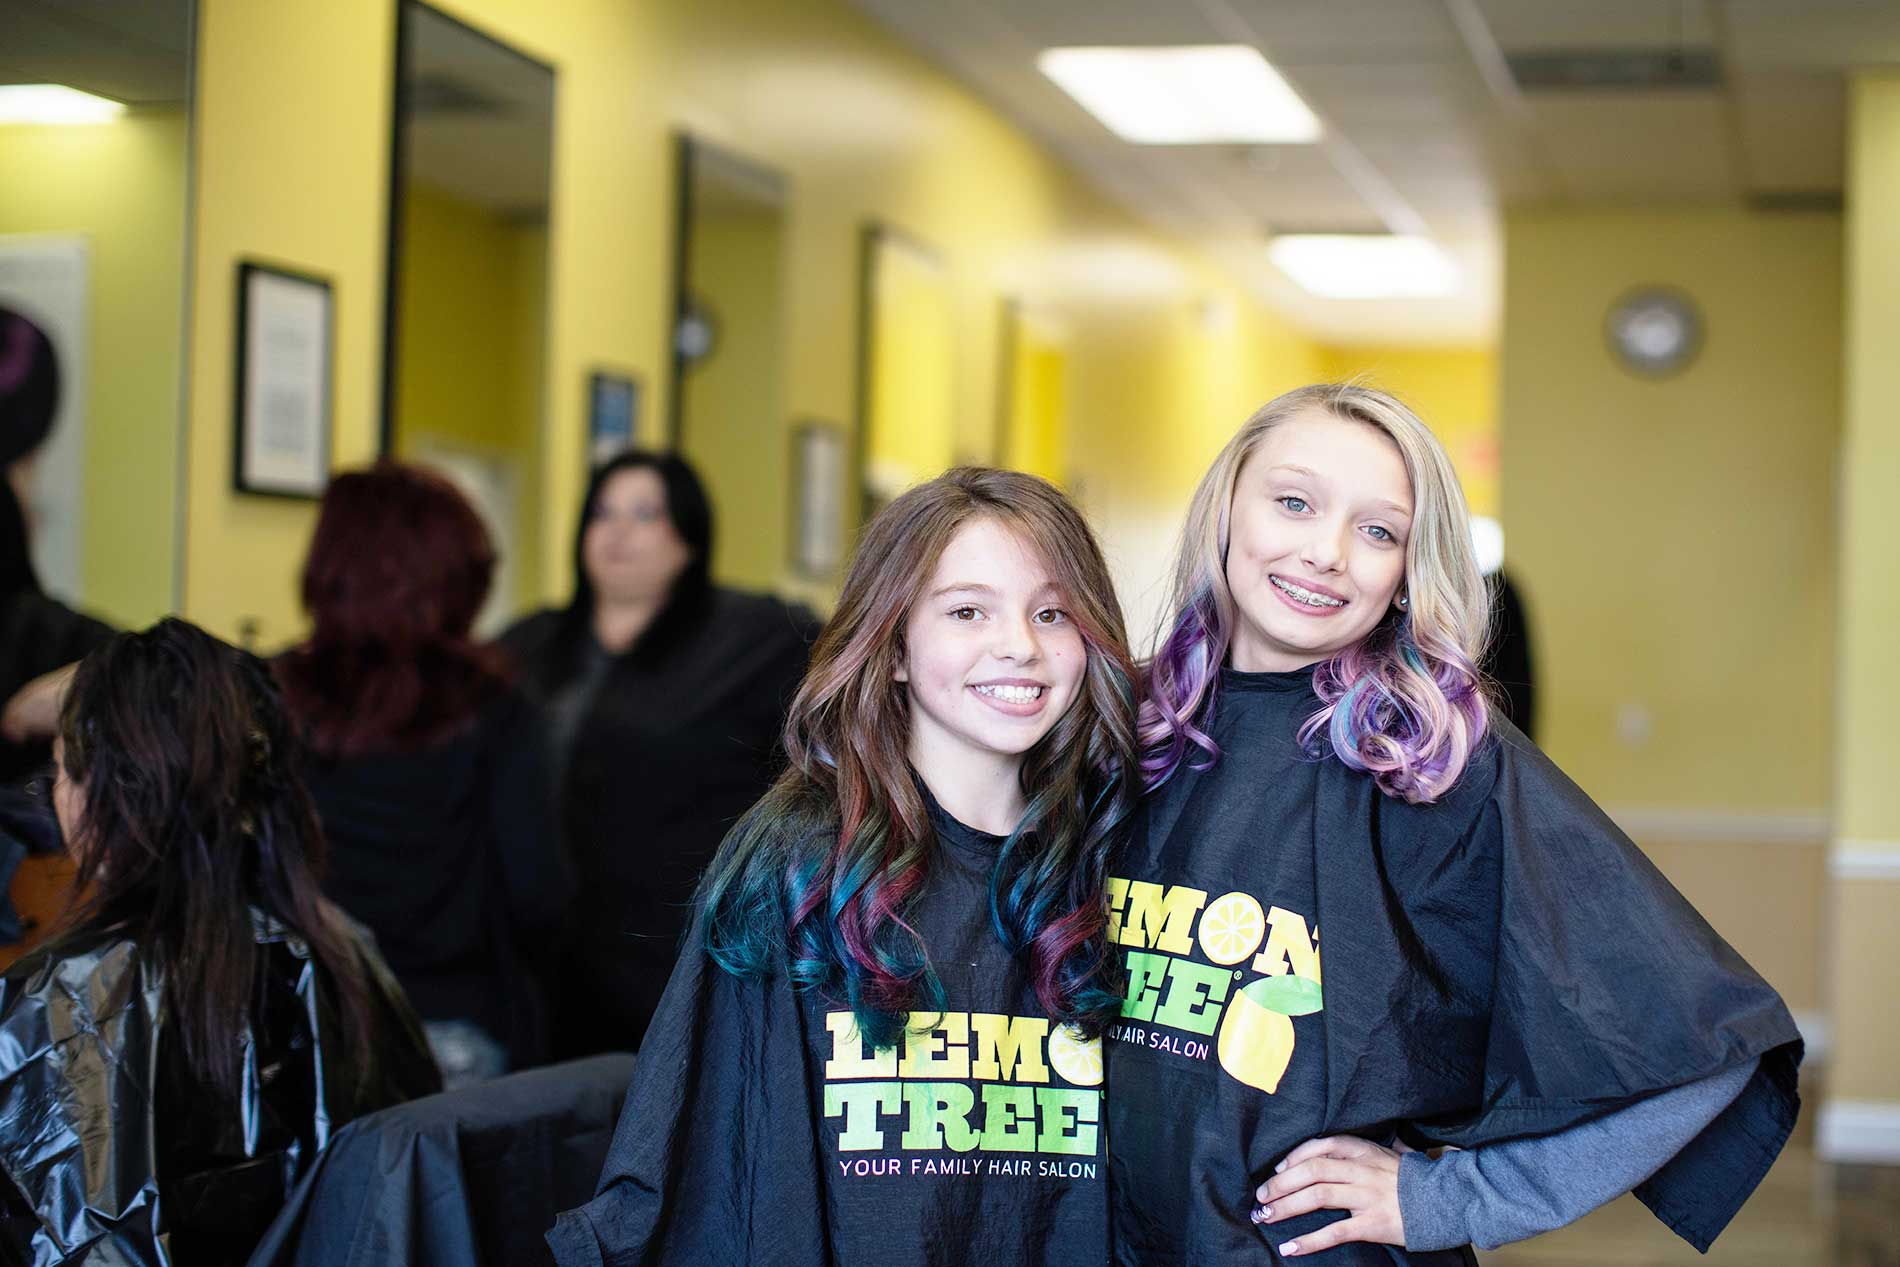 Lemon Tree Hair Salon Employment Opportunities